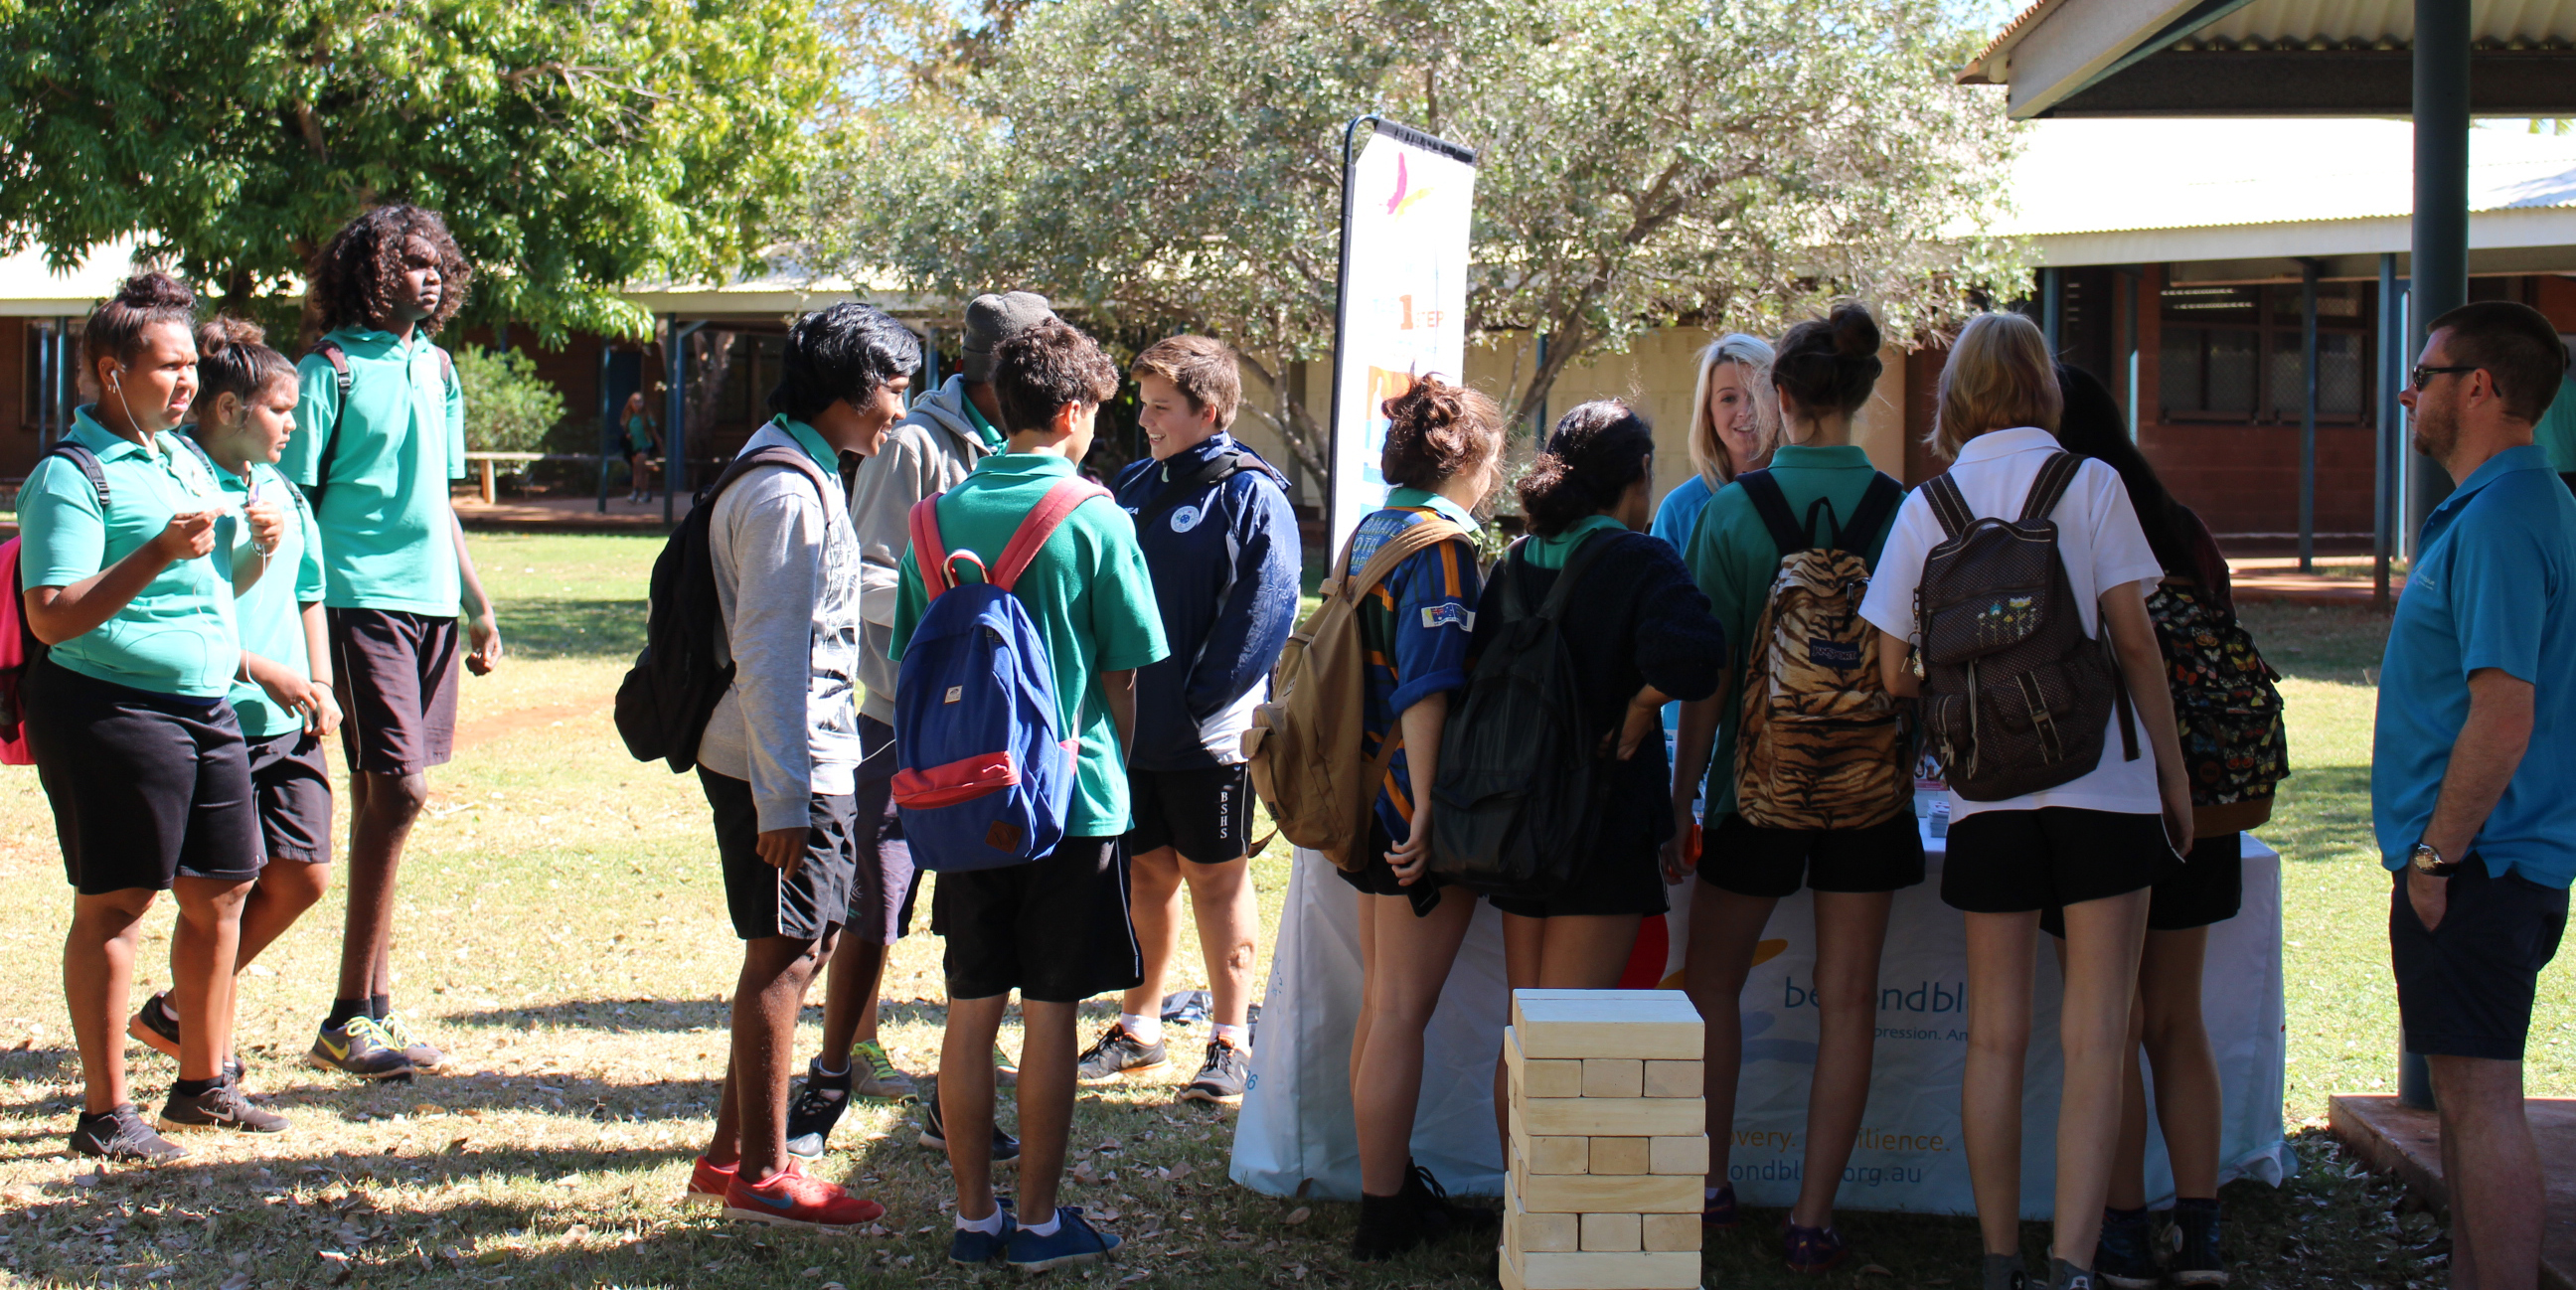 Chatting with students in Broome.